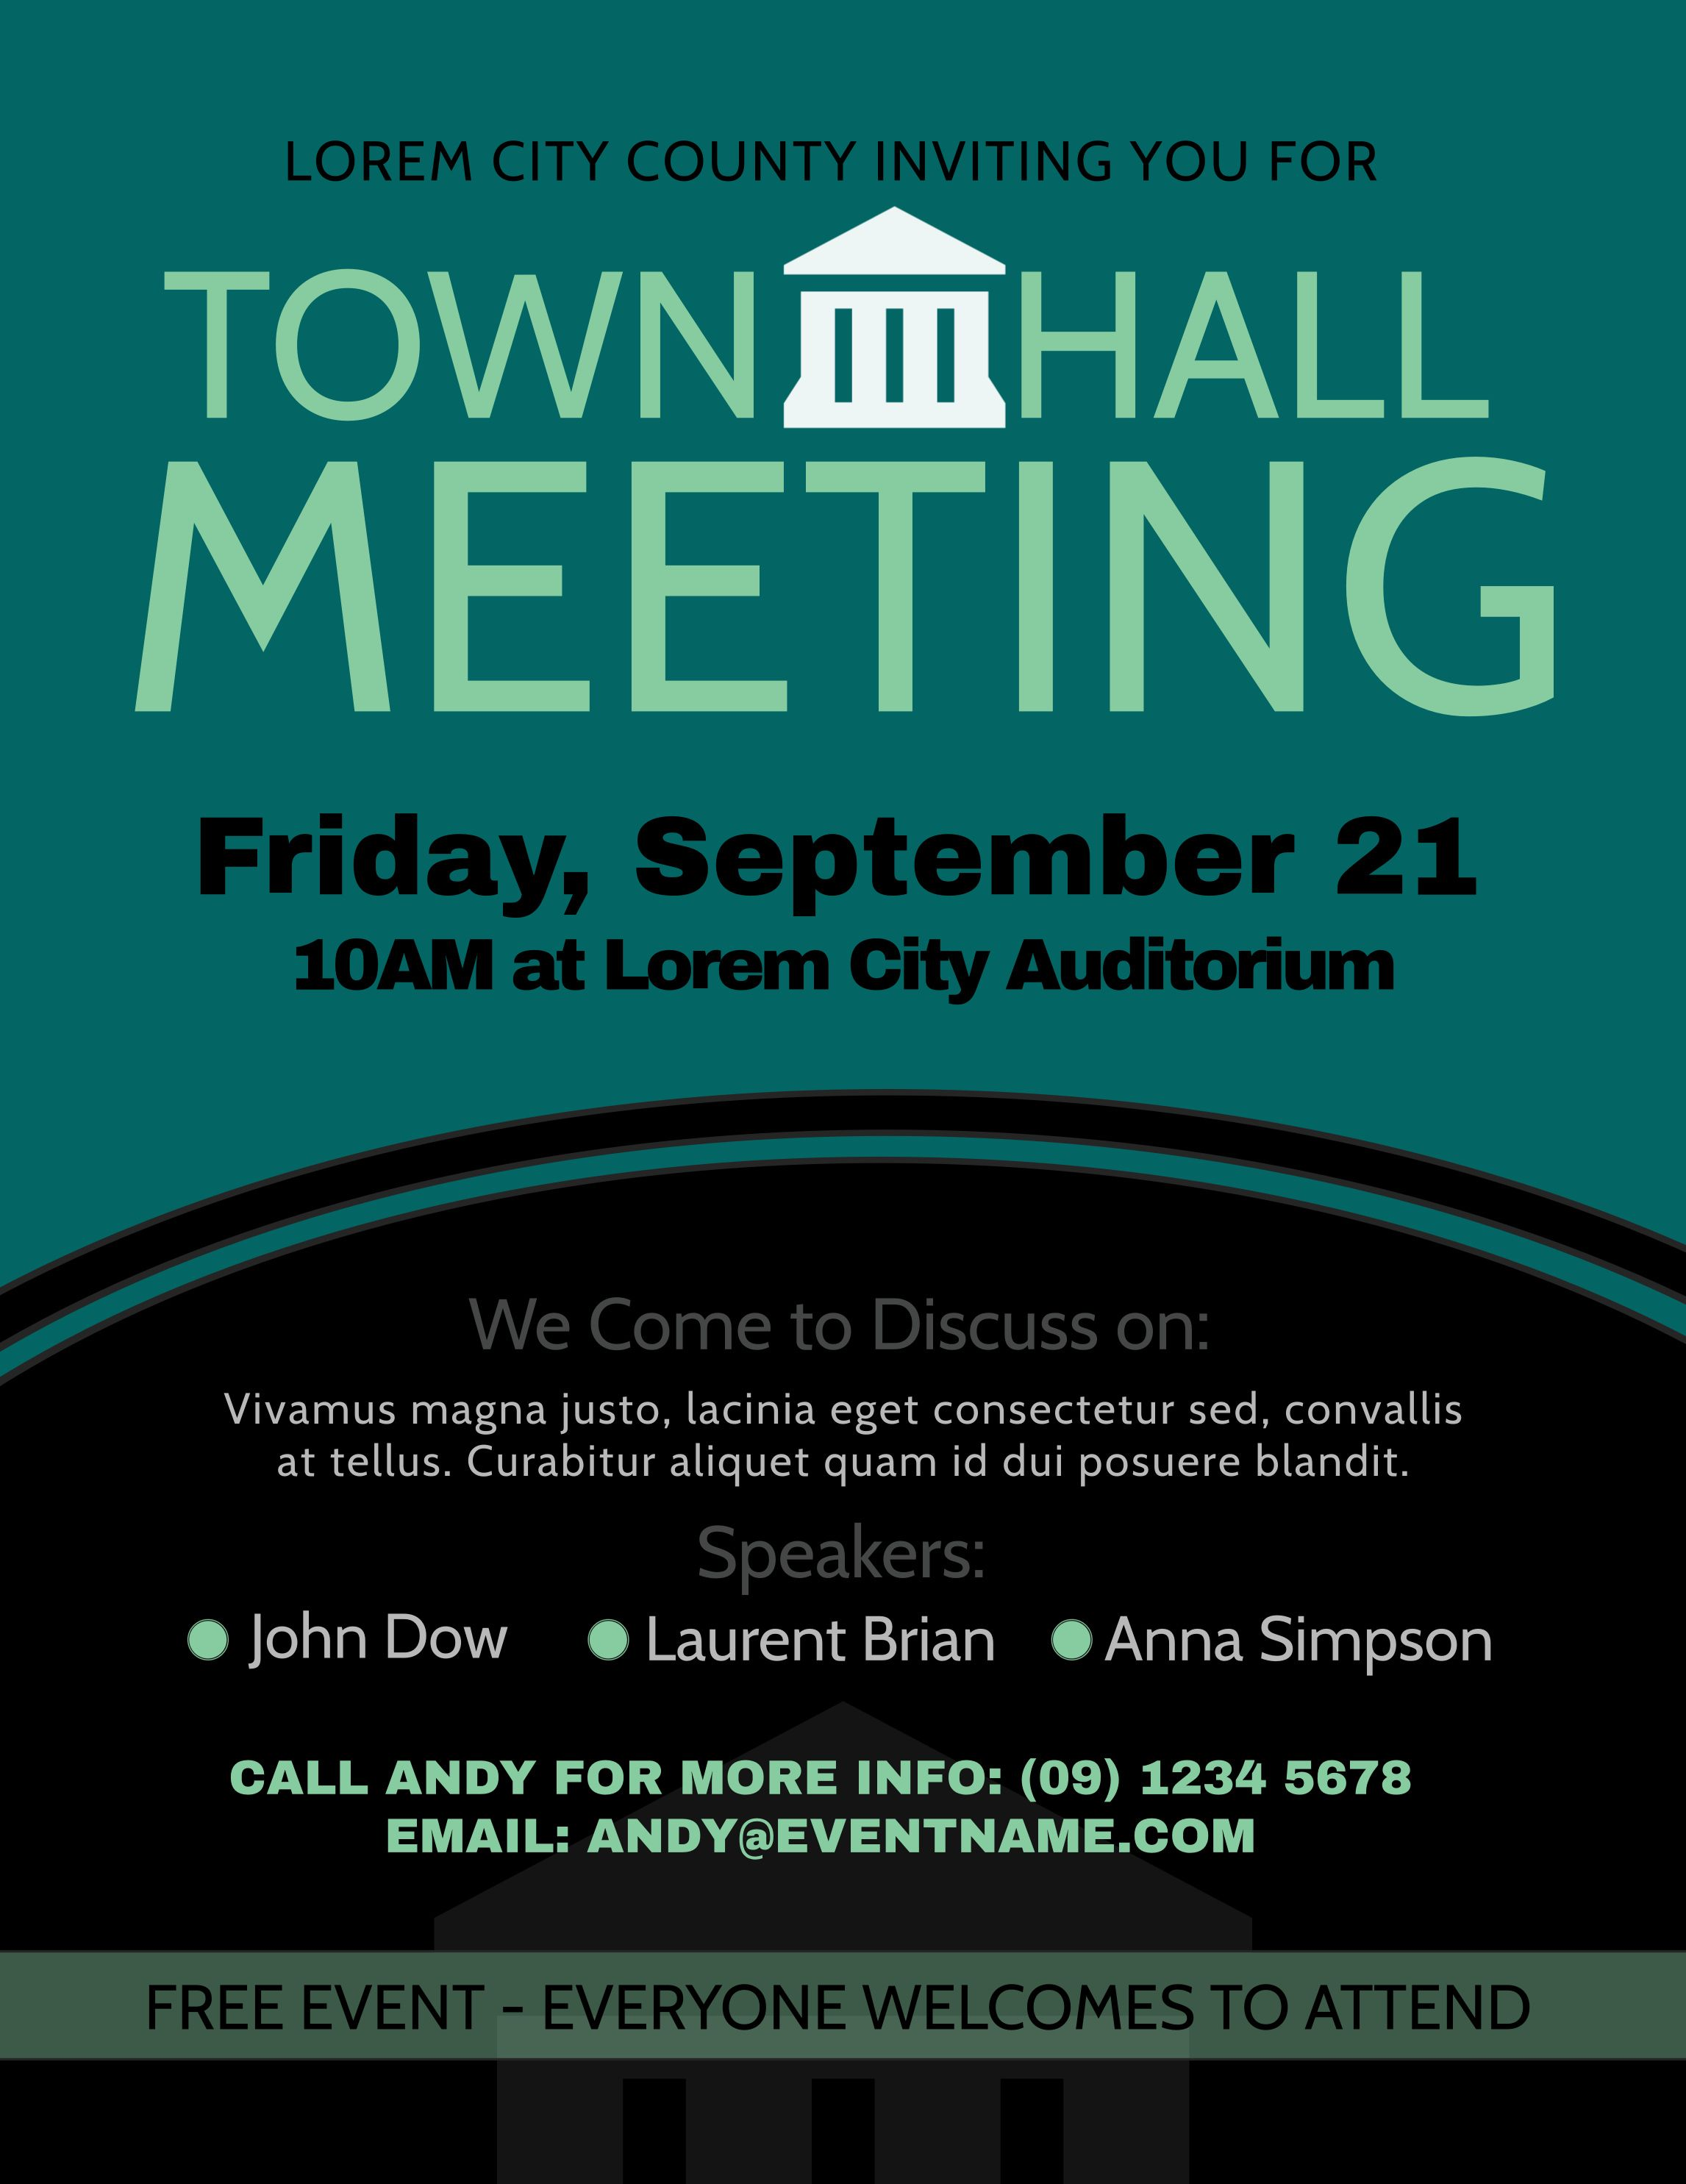 townhall meeting poster design template